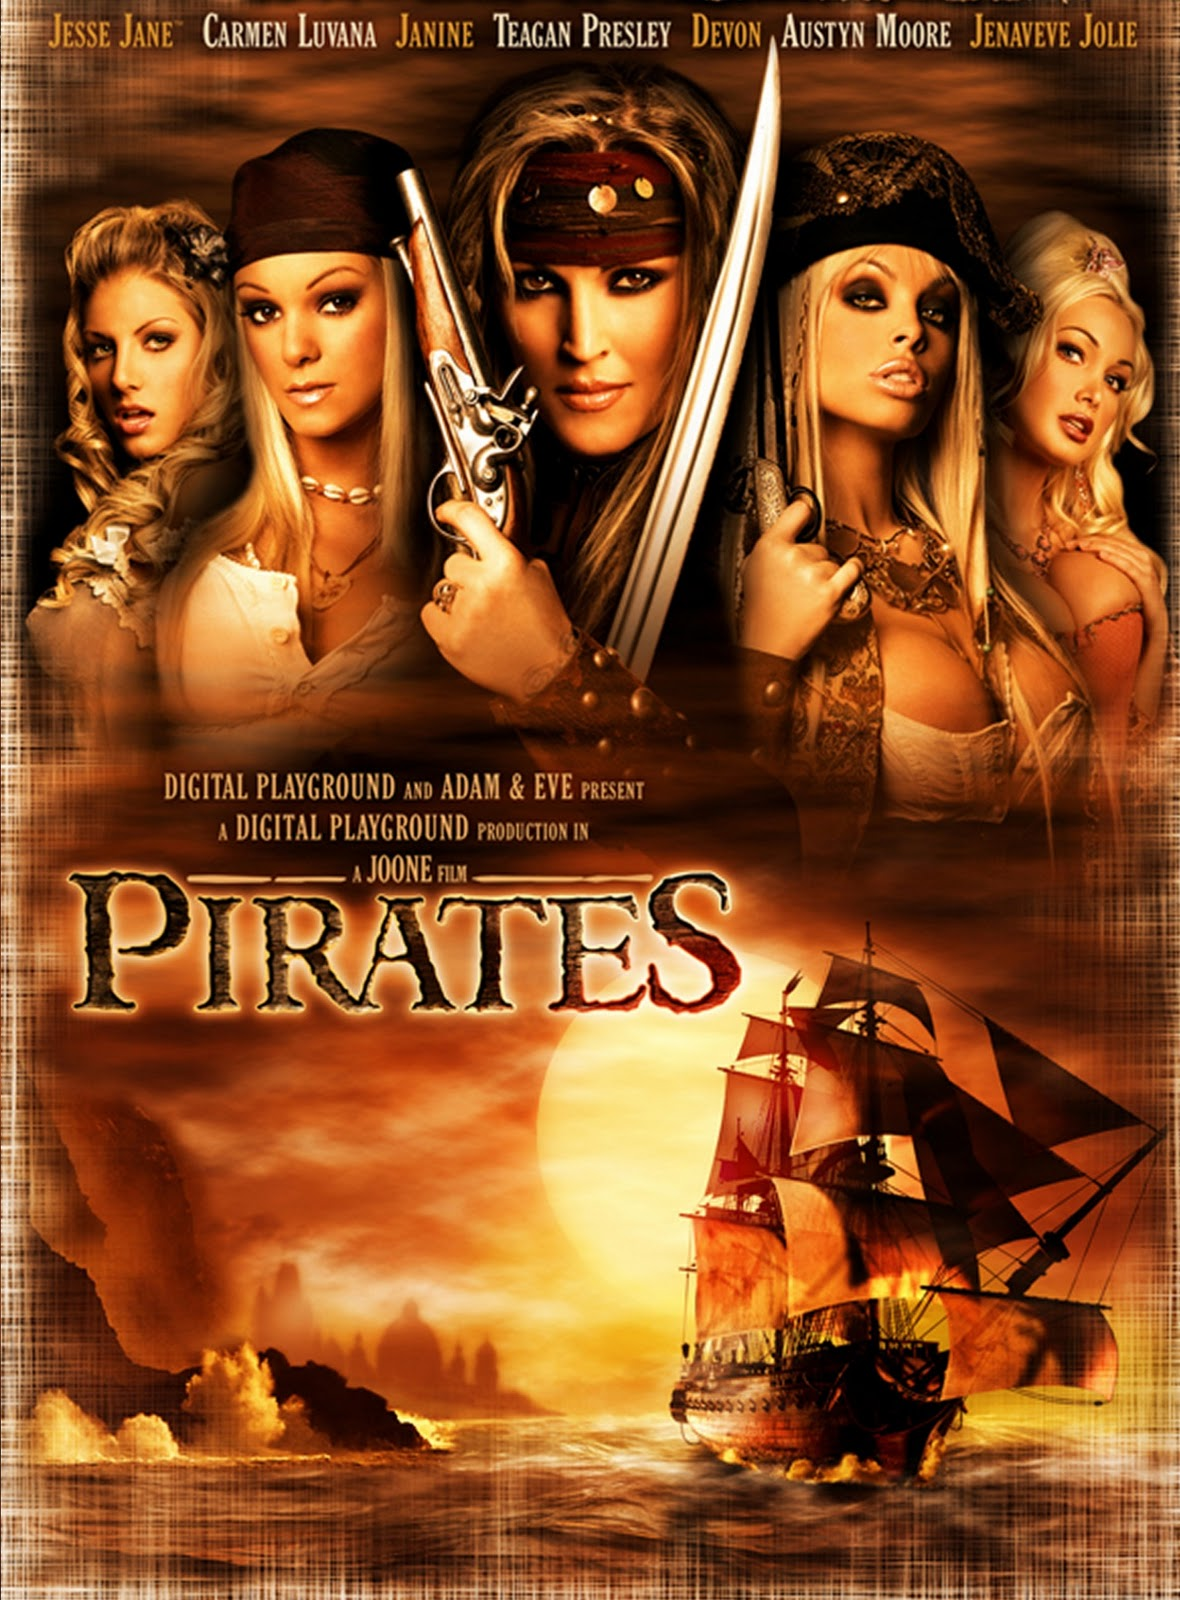 Pirates porno video naked scene